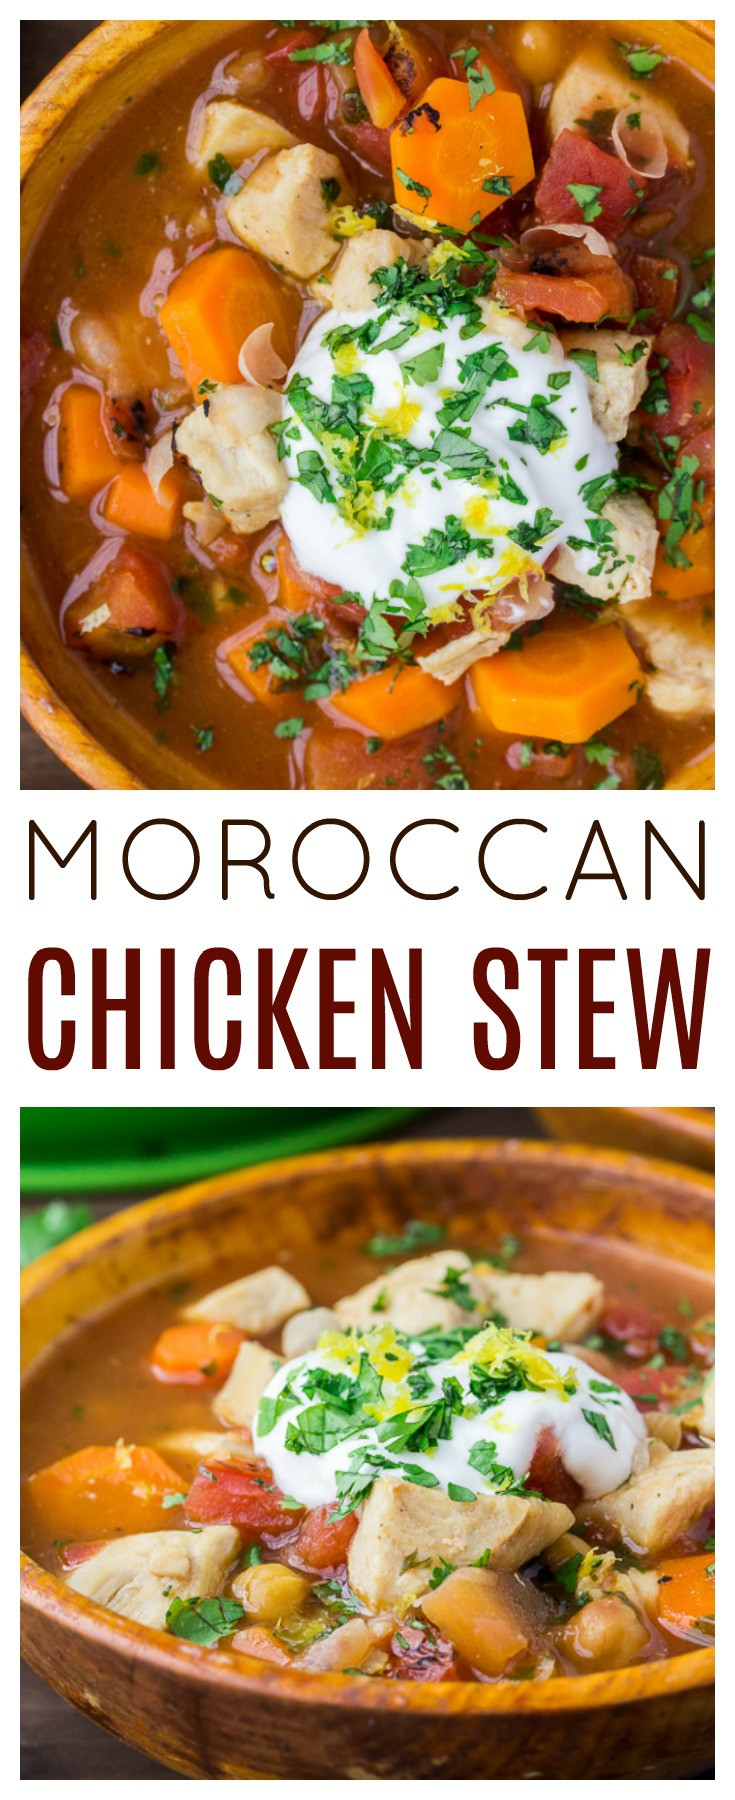 Moroccan Inspired Chicken Stew has a unique, delicious flavor! It's a hearty soup recipe that makes a delicious meal. Serve with a dollop of Greek yogurt and crusty bread for the ultimate comfort food meal! | #dlbrecipes #moroccanstew #souprecipe #comfortfood